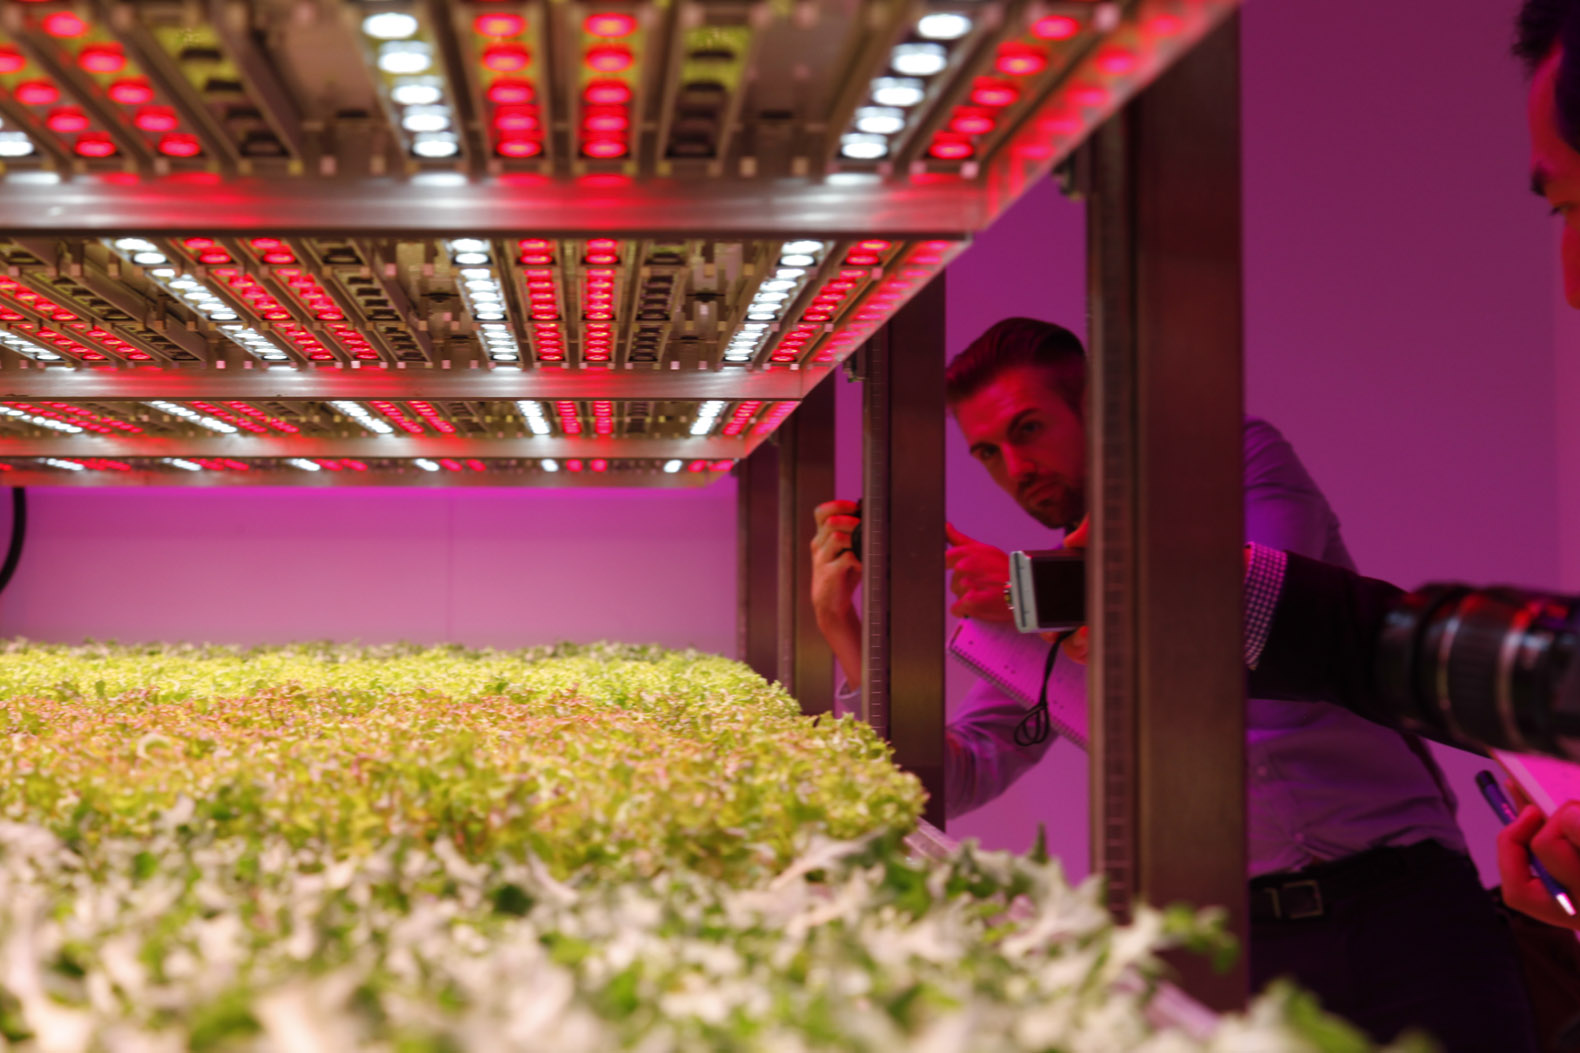 Inhabitat.com Philip's new GrowWise Urban Farming Research Facility in Eindhoven